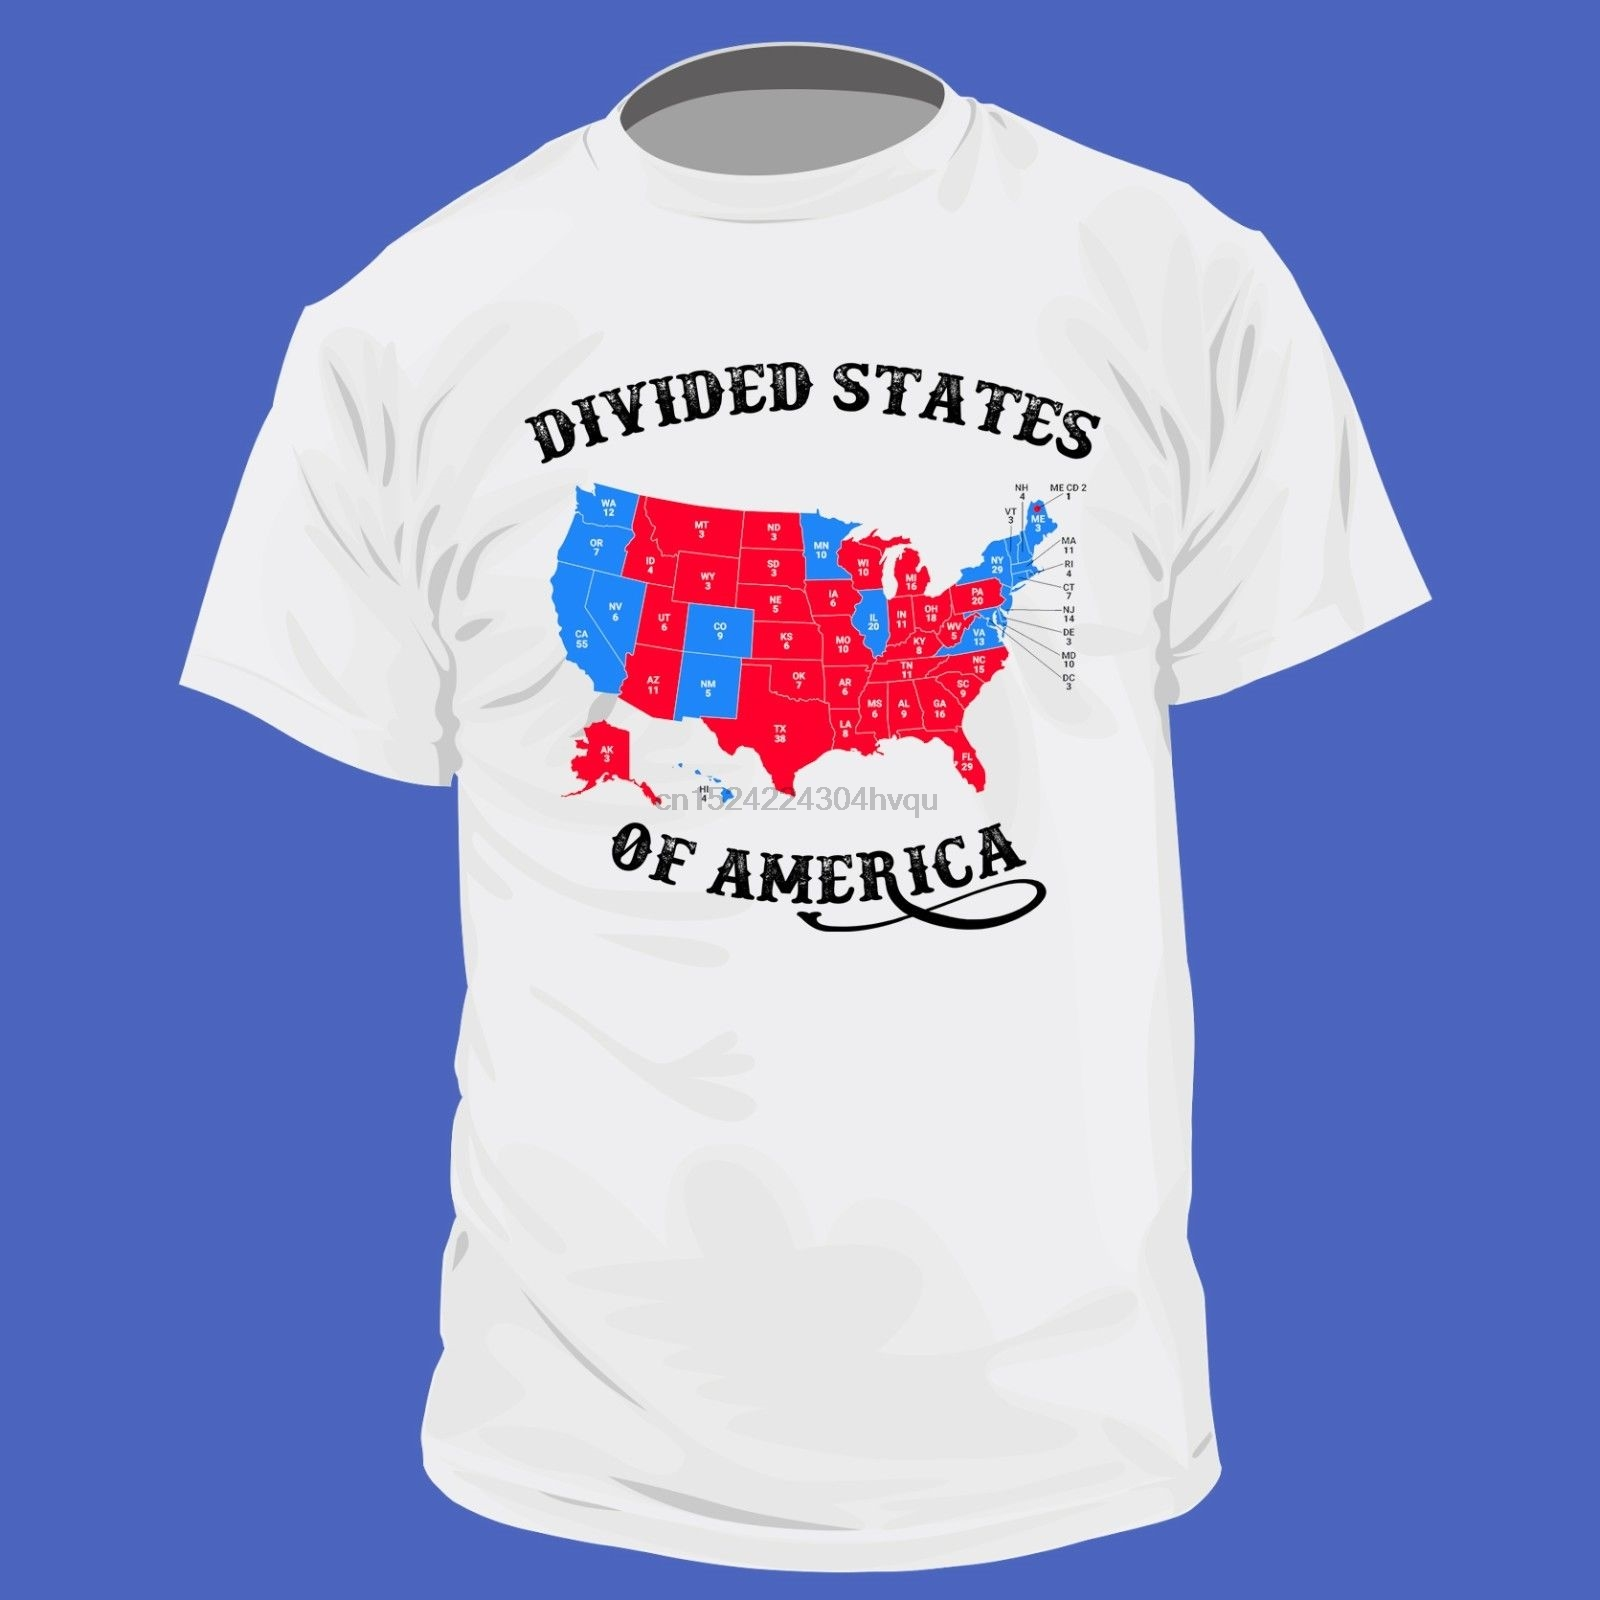 New Divided States Of America Shirt Electoral College Election Map